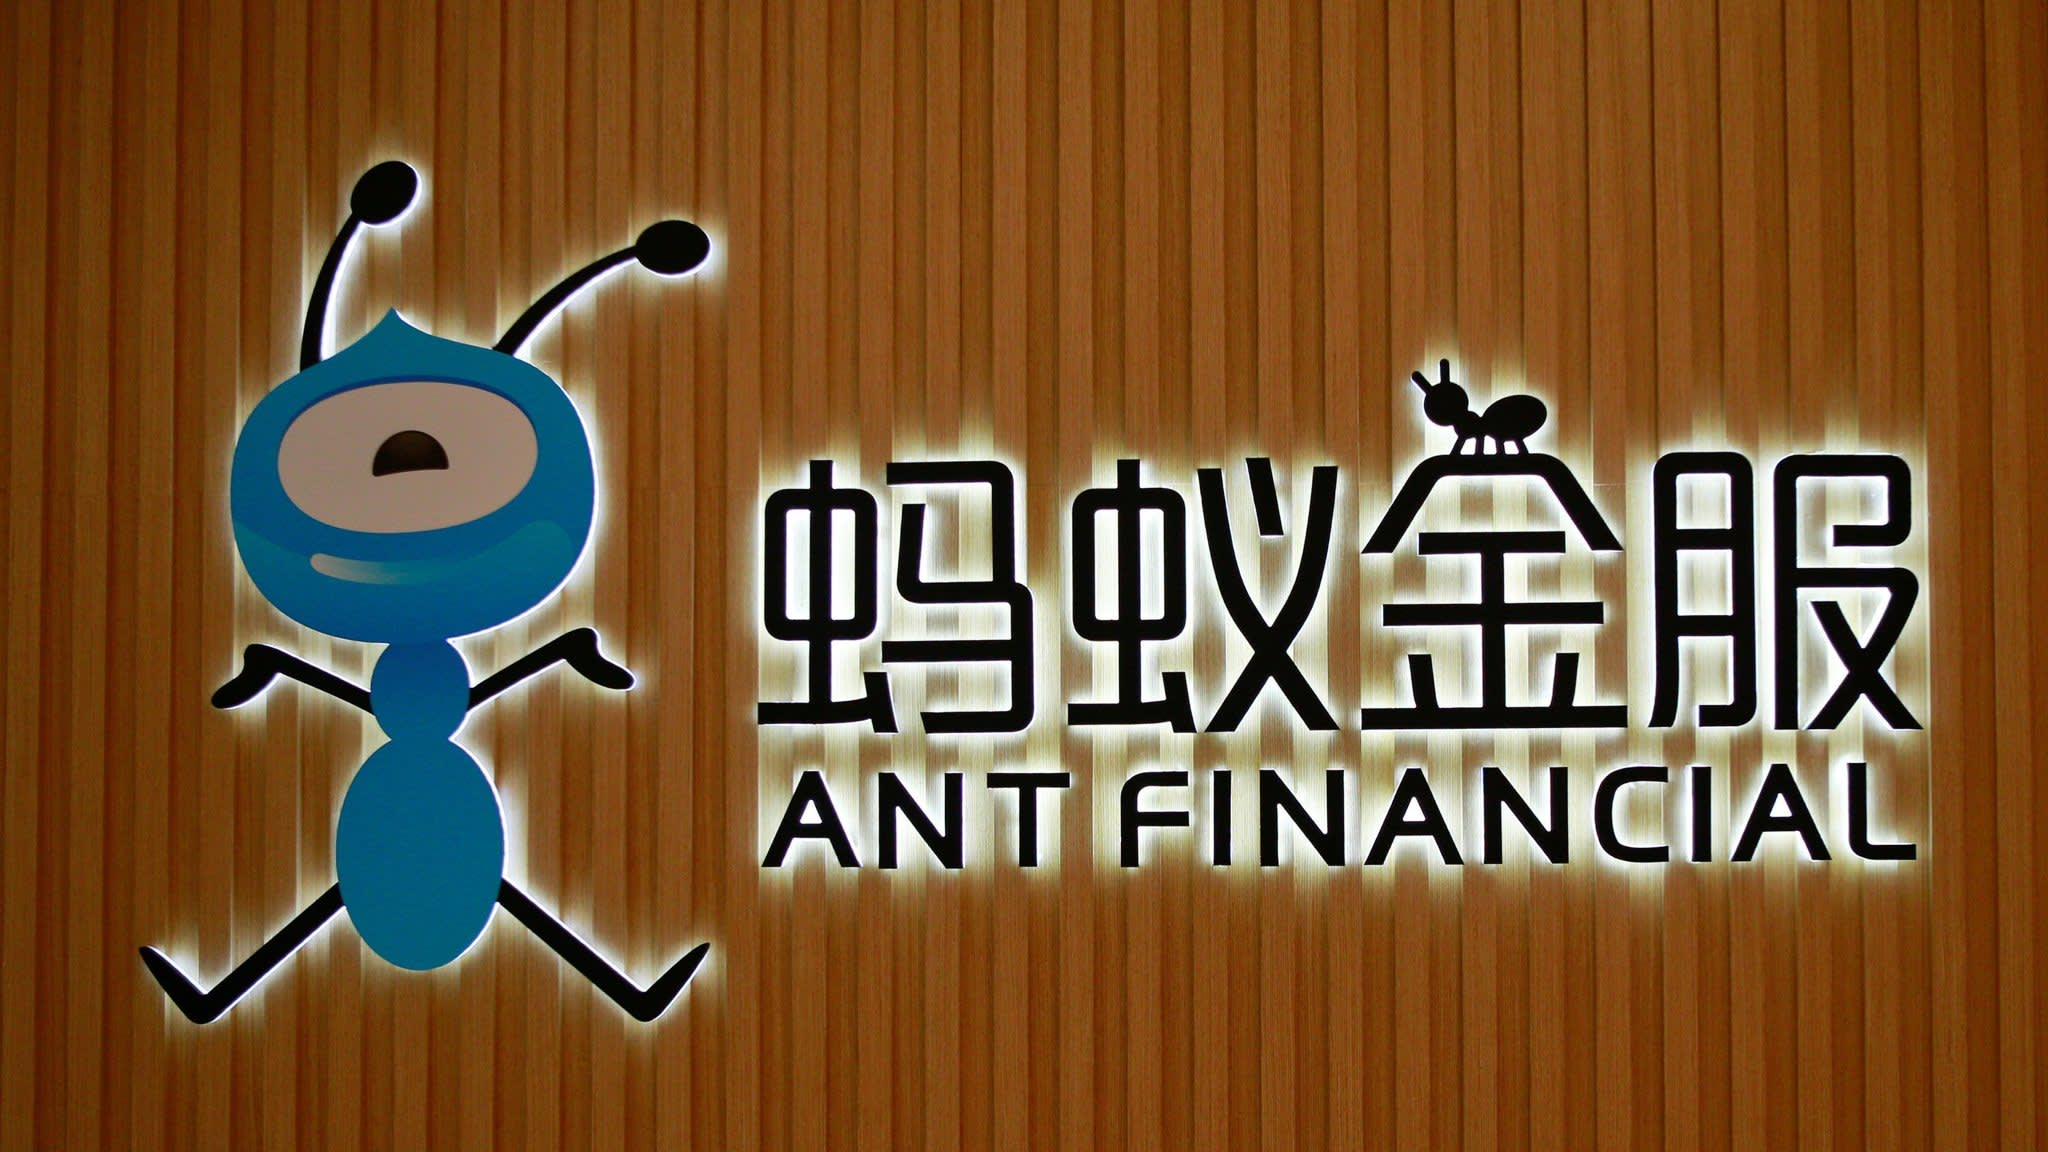 Ant Financial set for $150bn valuation in latest funding round